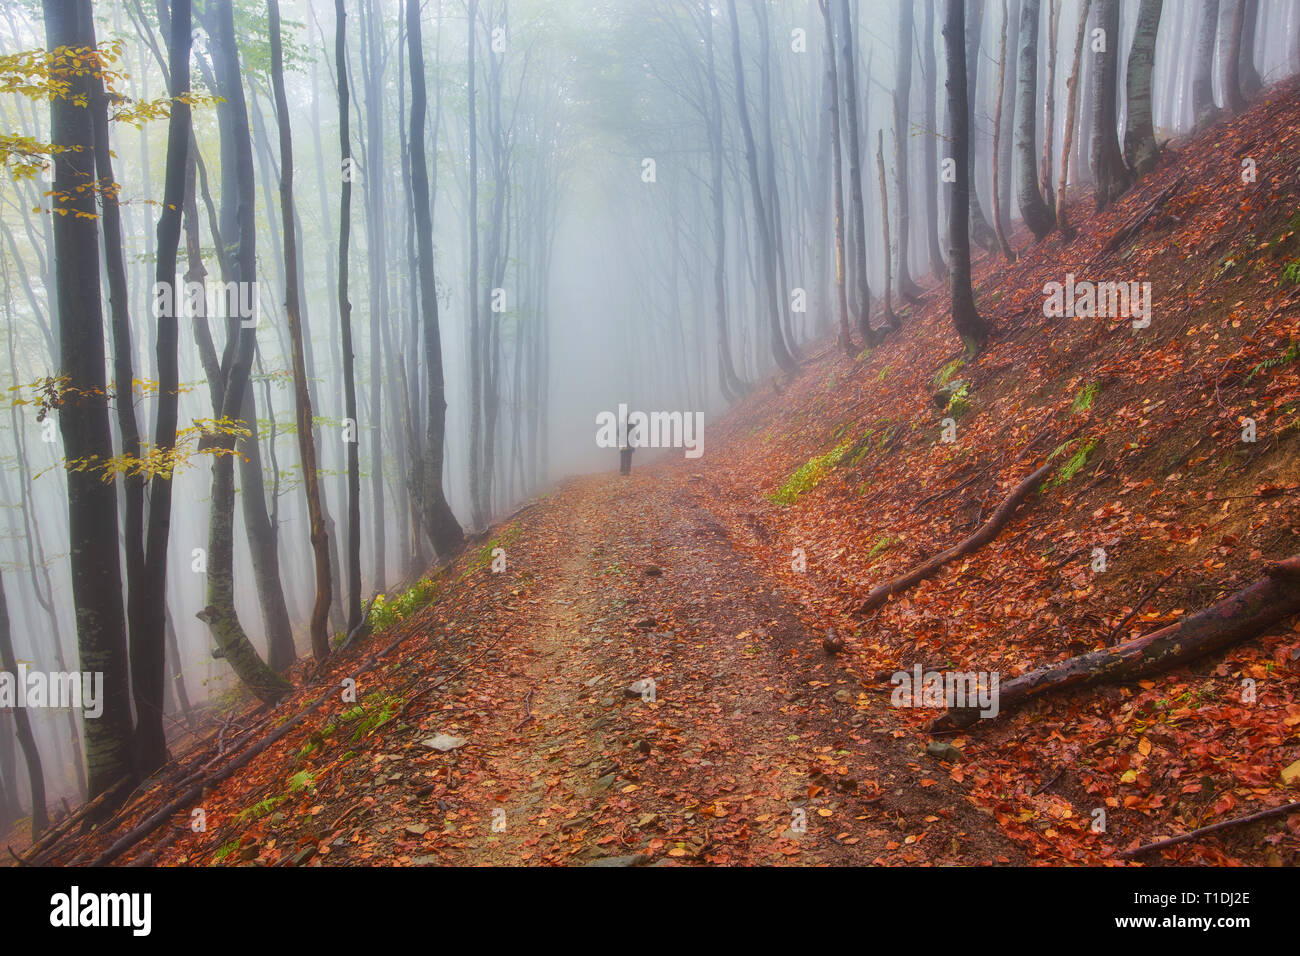 Forest trail in the mountains on a misty autumn day. - Stock Image